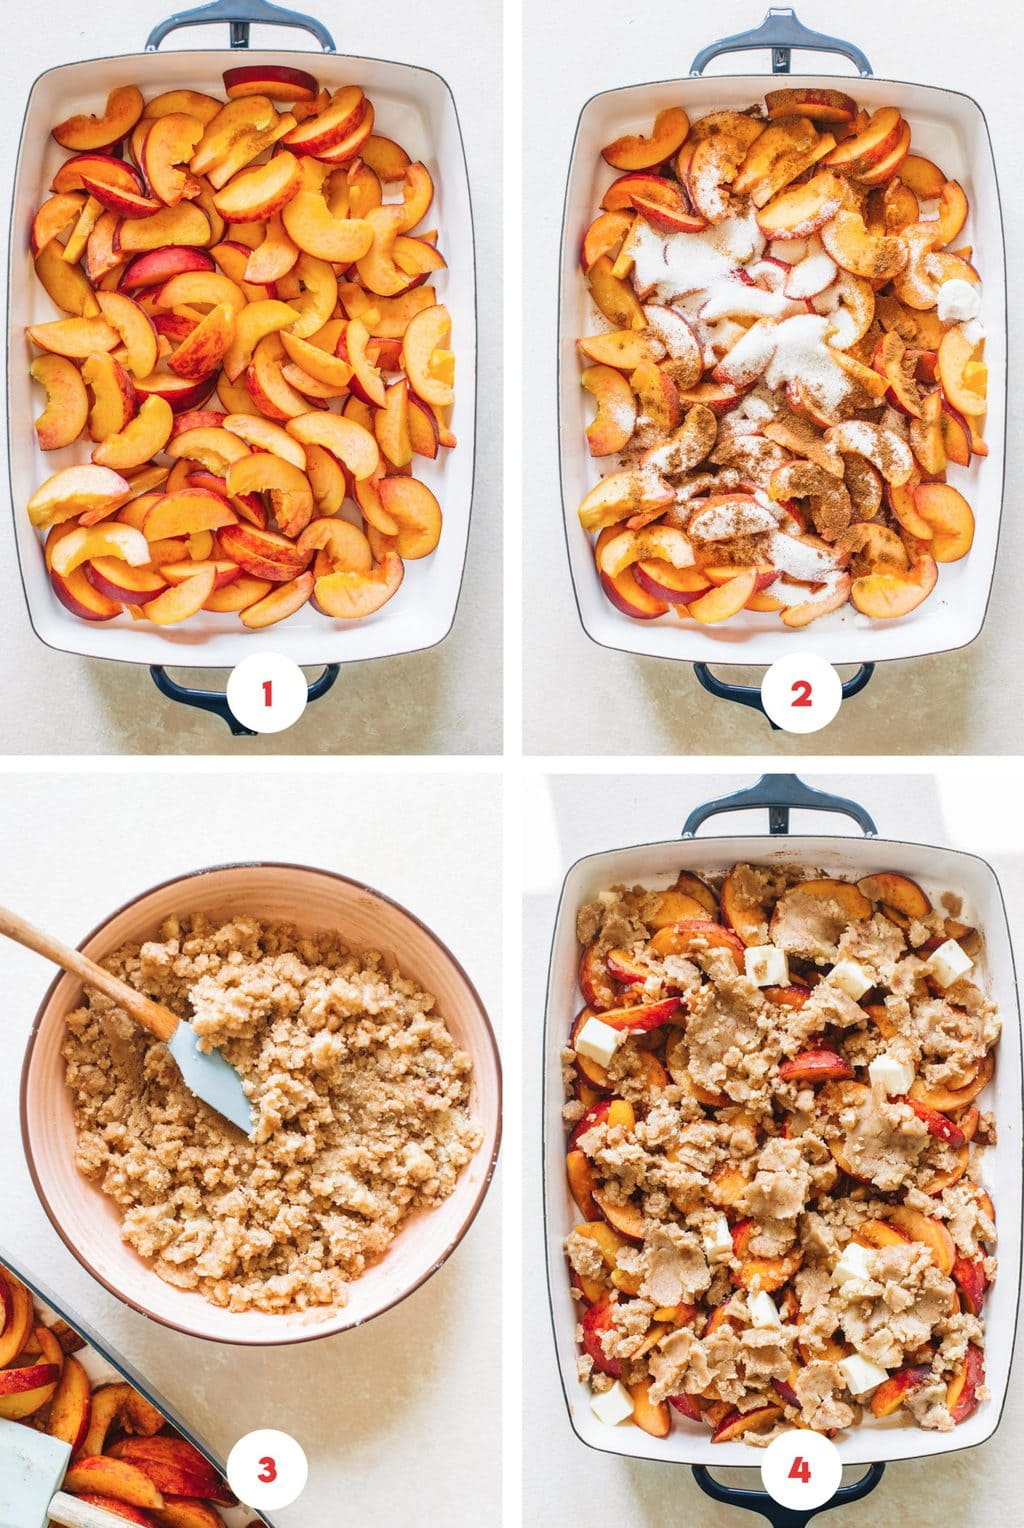 Step by step process on how to make the peach filling and topping for peach cobbler.